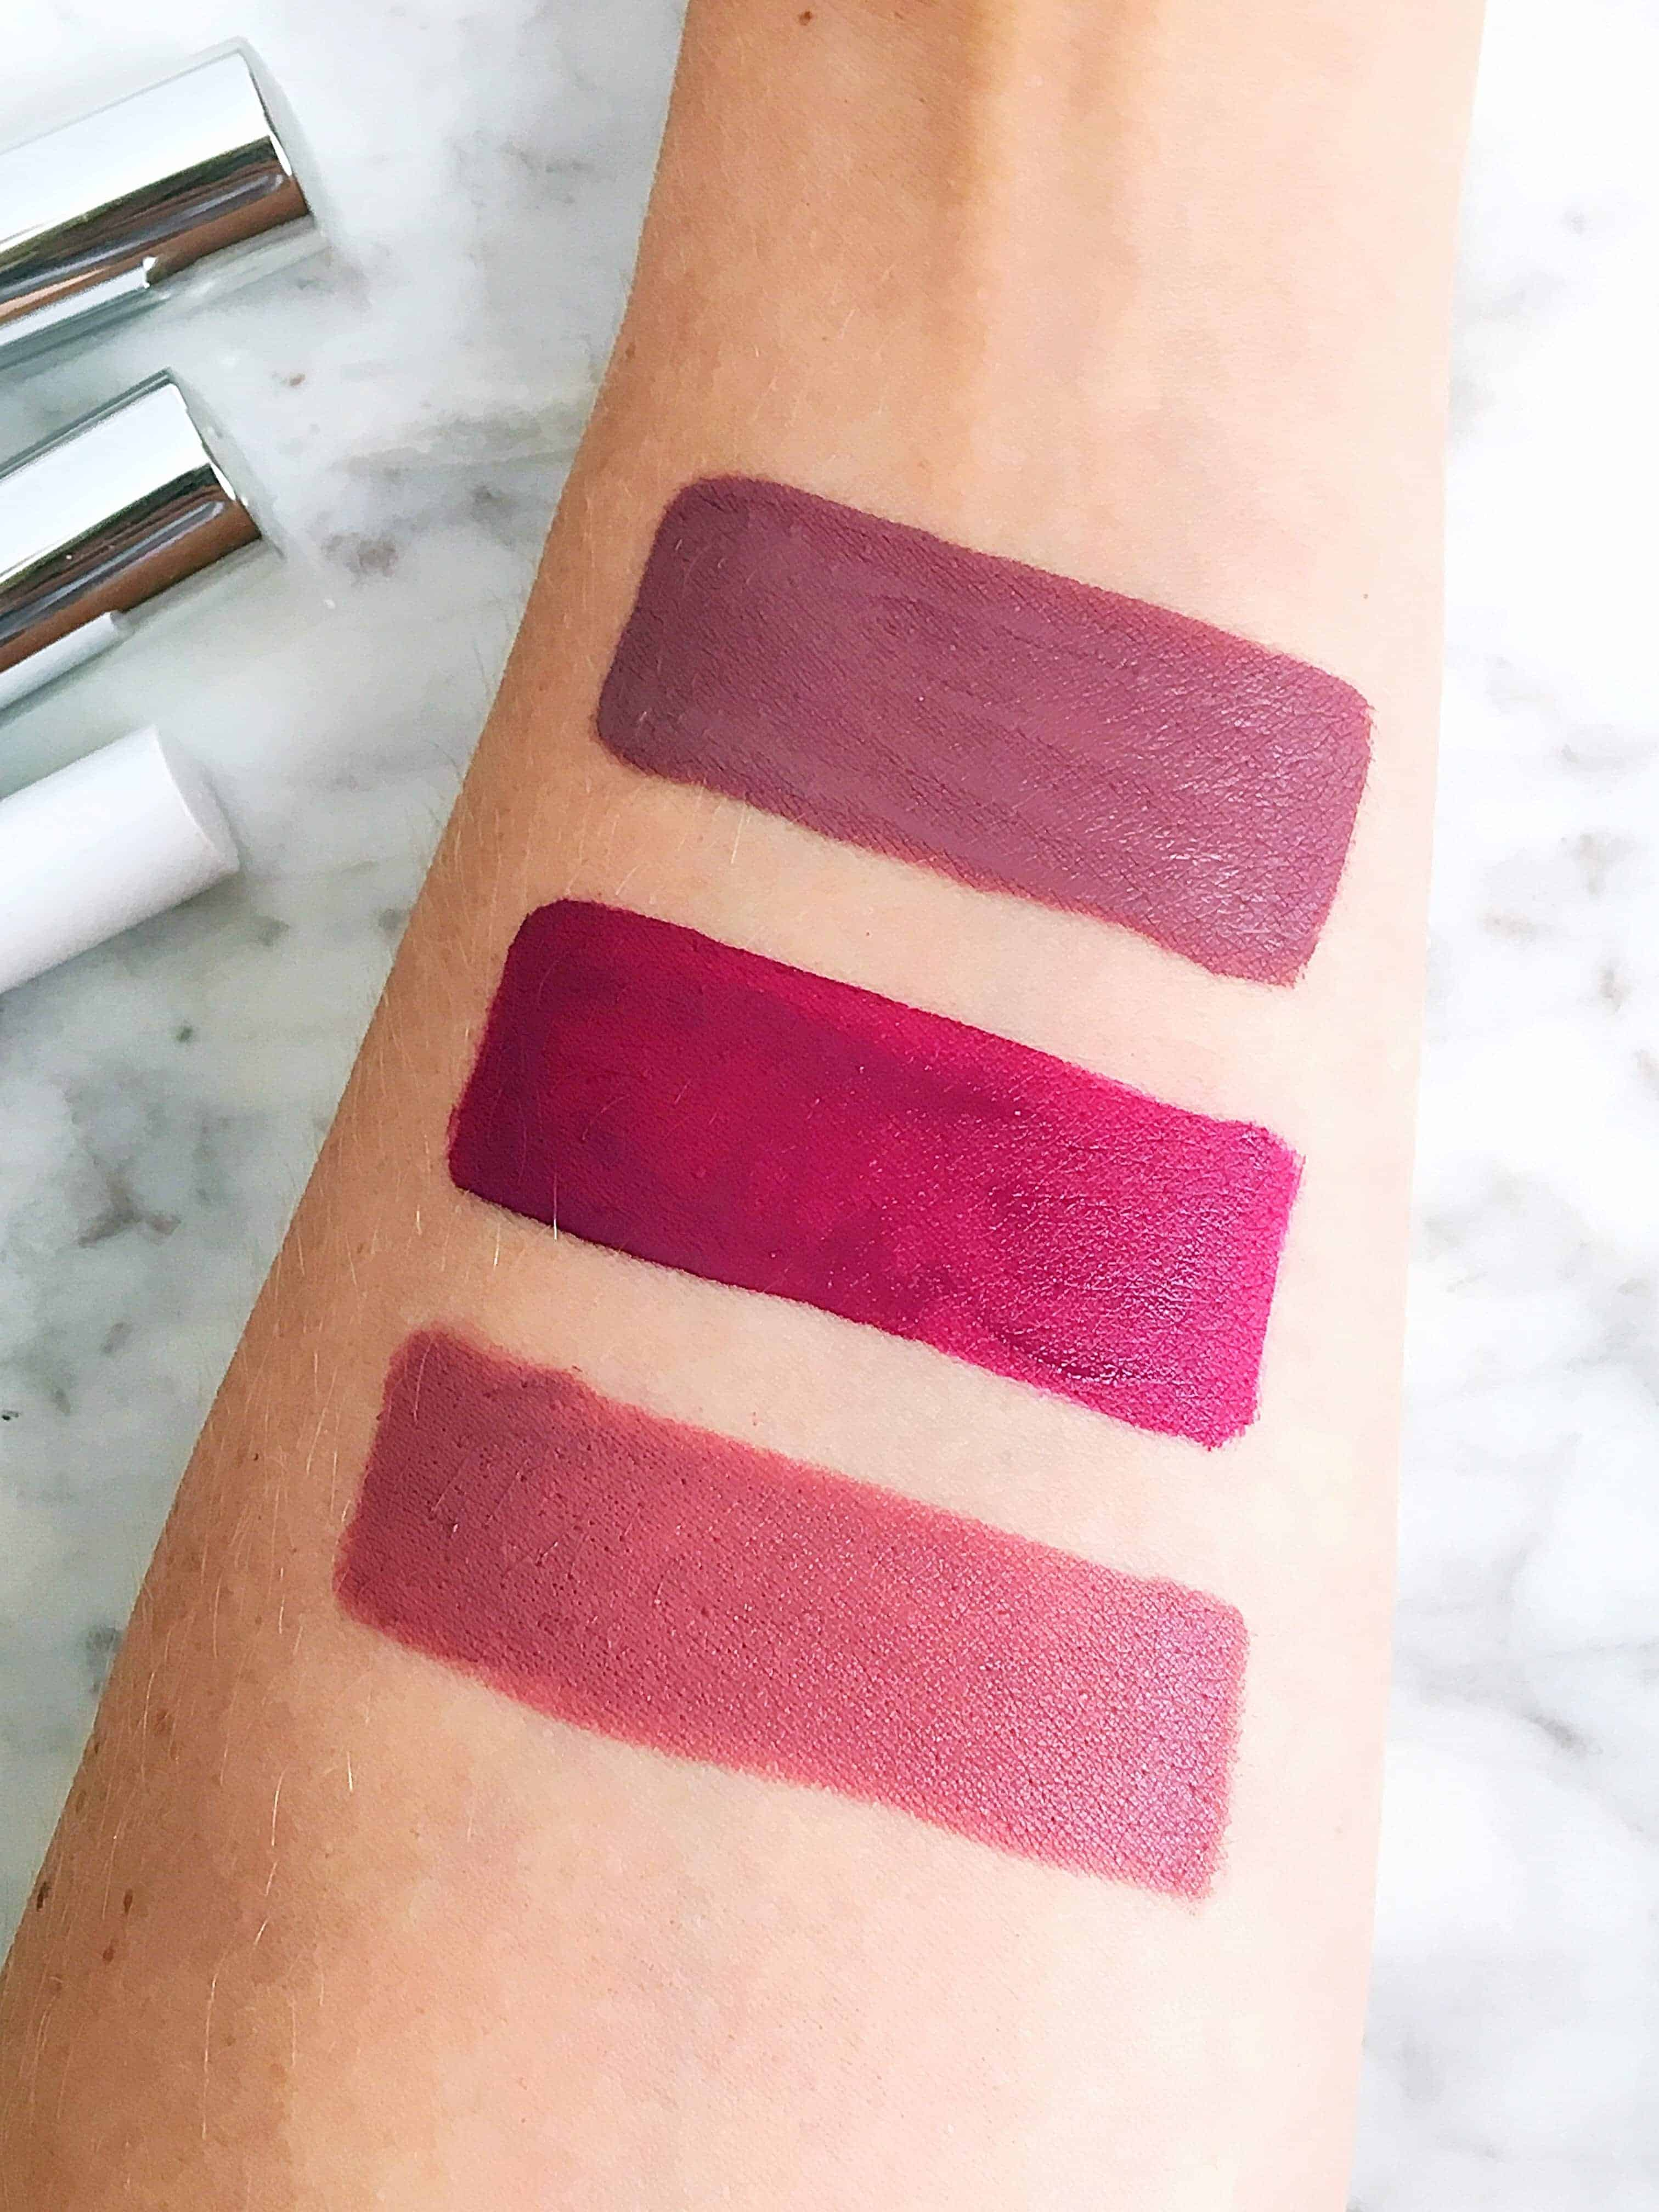 Today I'm sharing the Best ColourPop Lipsticks for every lipstick lover to add to their makeup collection!Sharing a full colourpop lip review and swatches of some of the most popular ColourPop ultra matte liquid lipsticks and best selling lippie stix and my favorite Colourpop lipstick shade recommendations.